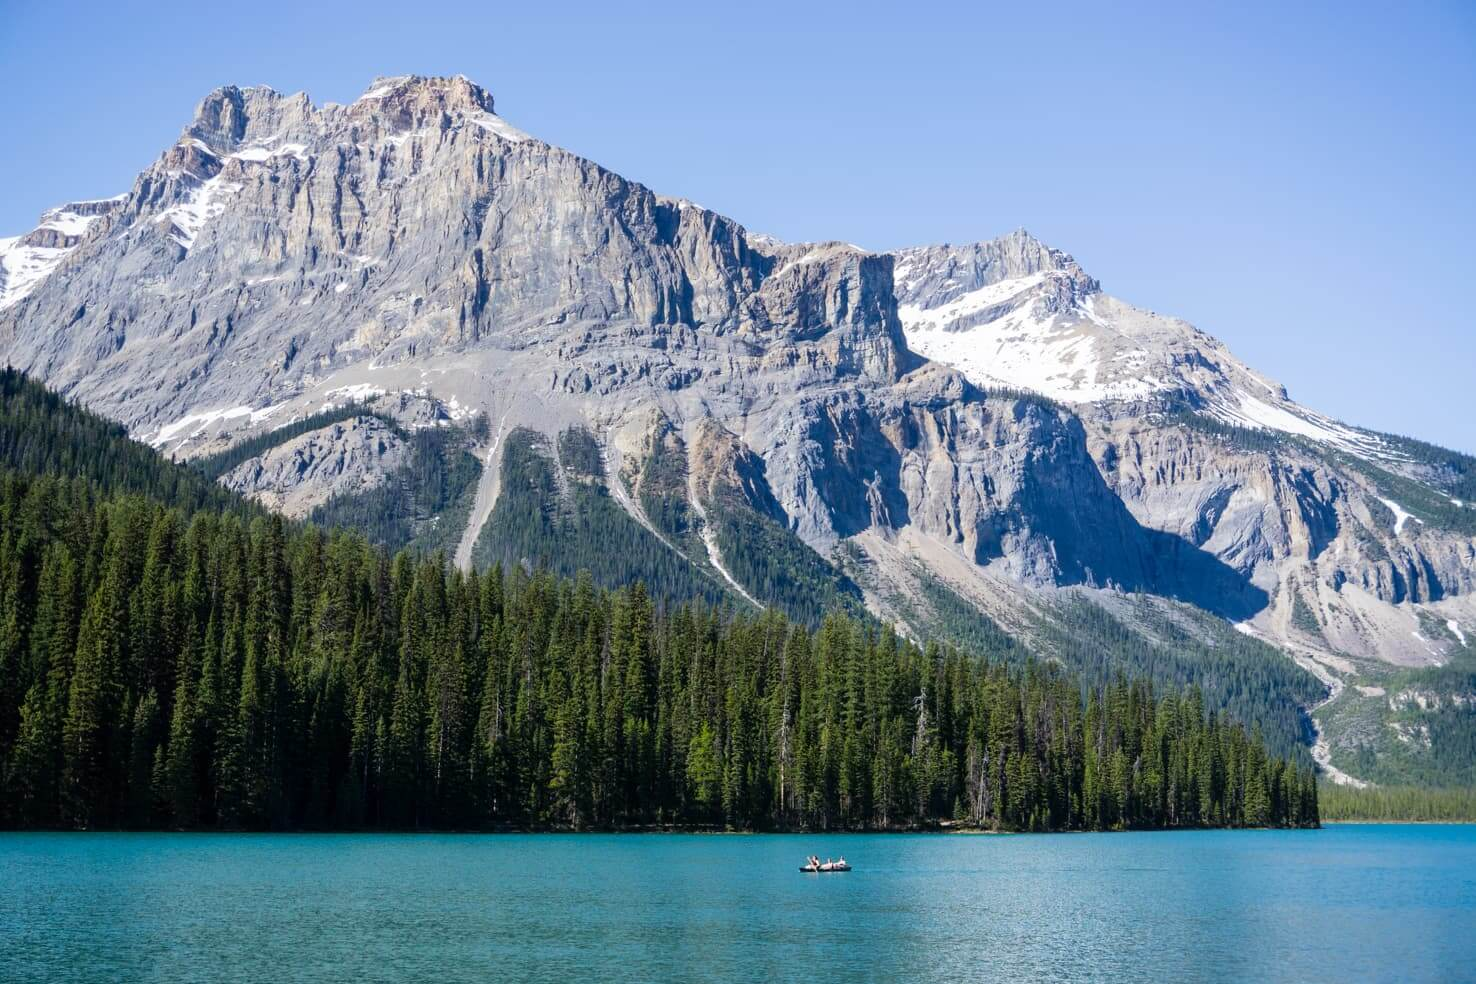 Adventure travel guide to Yoho National Park - Canoe on Emerald Lake